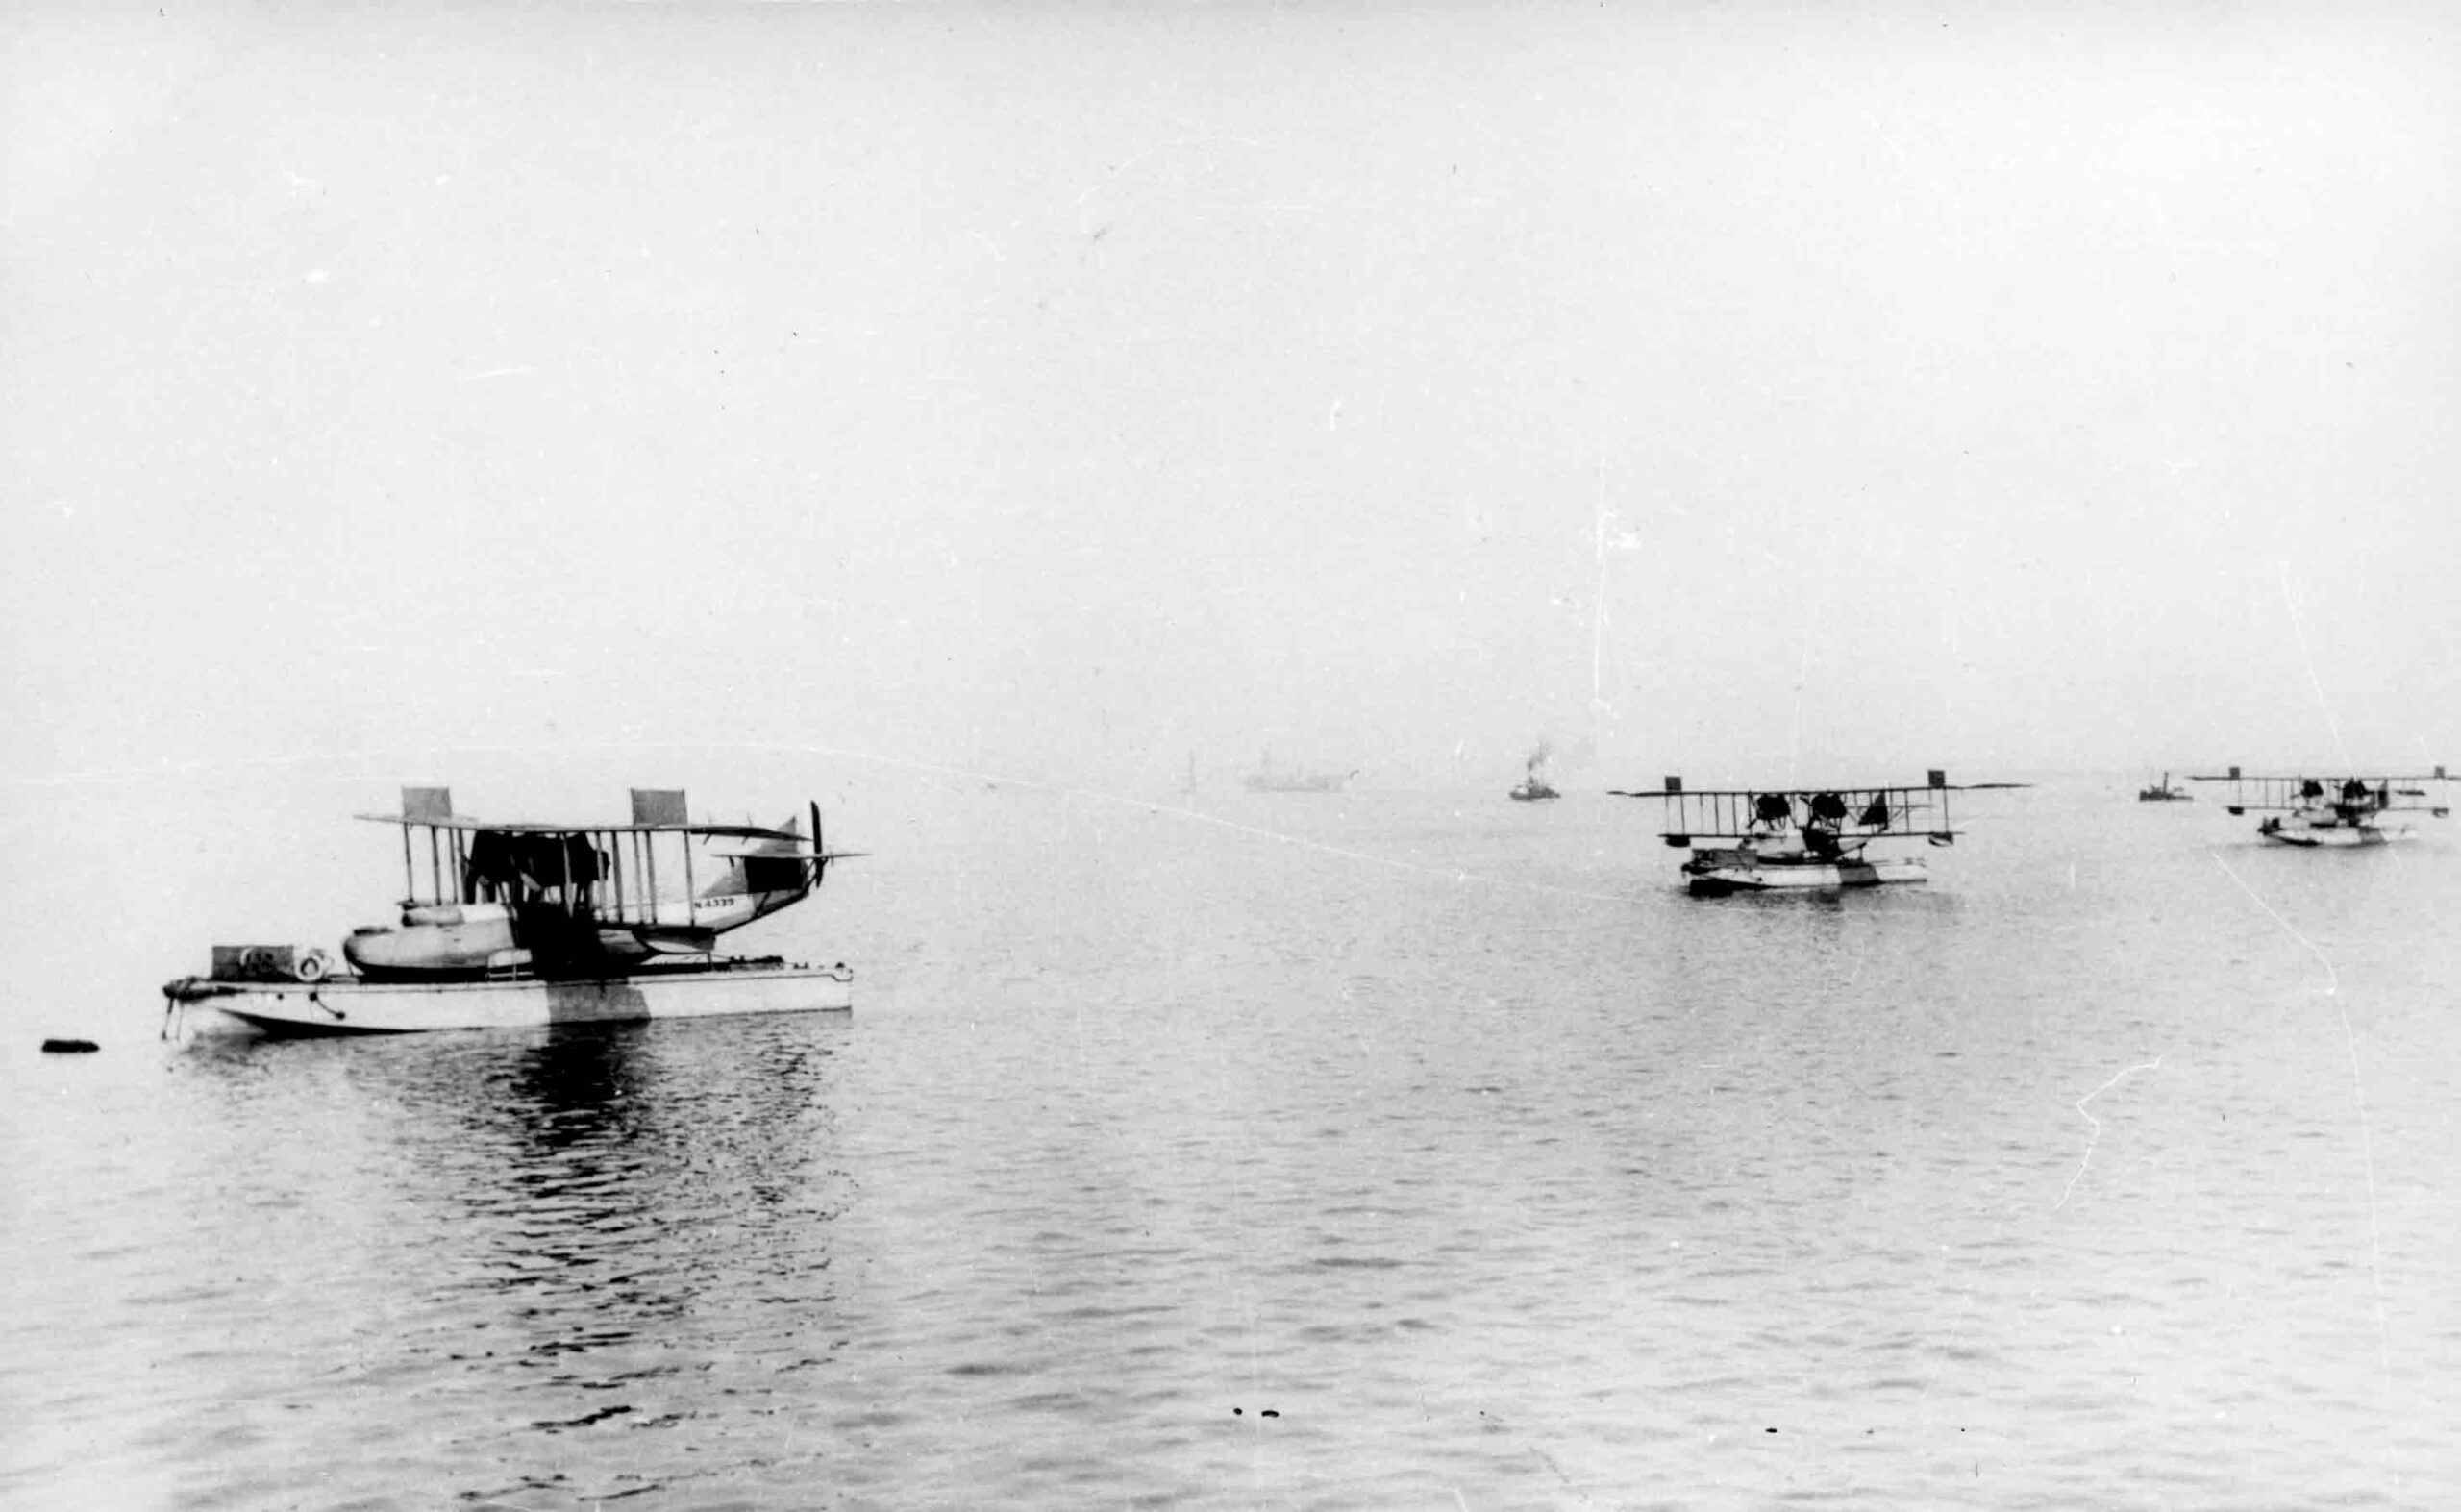 Three Curtiss H12s loaded onto moored lighters, c. 1918 (RAFM reference: X003-2602/6589)